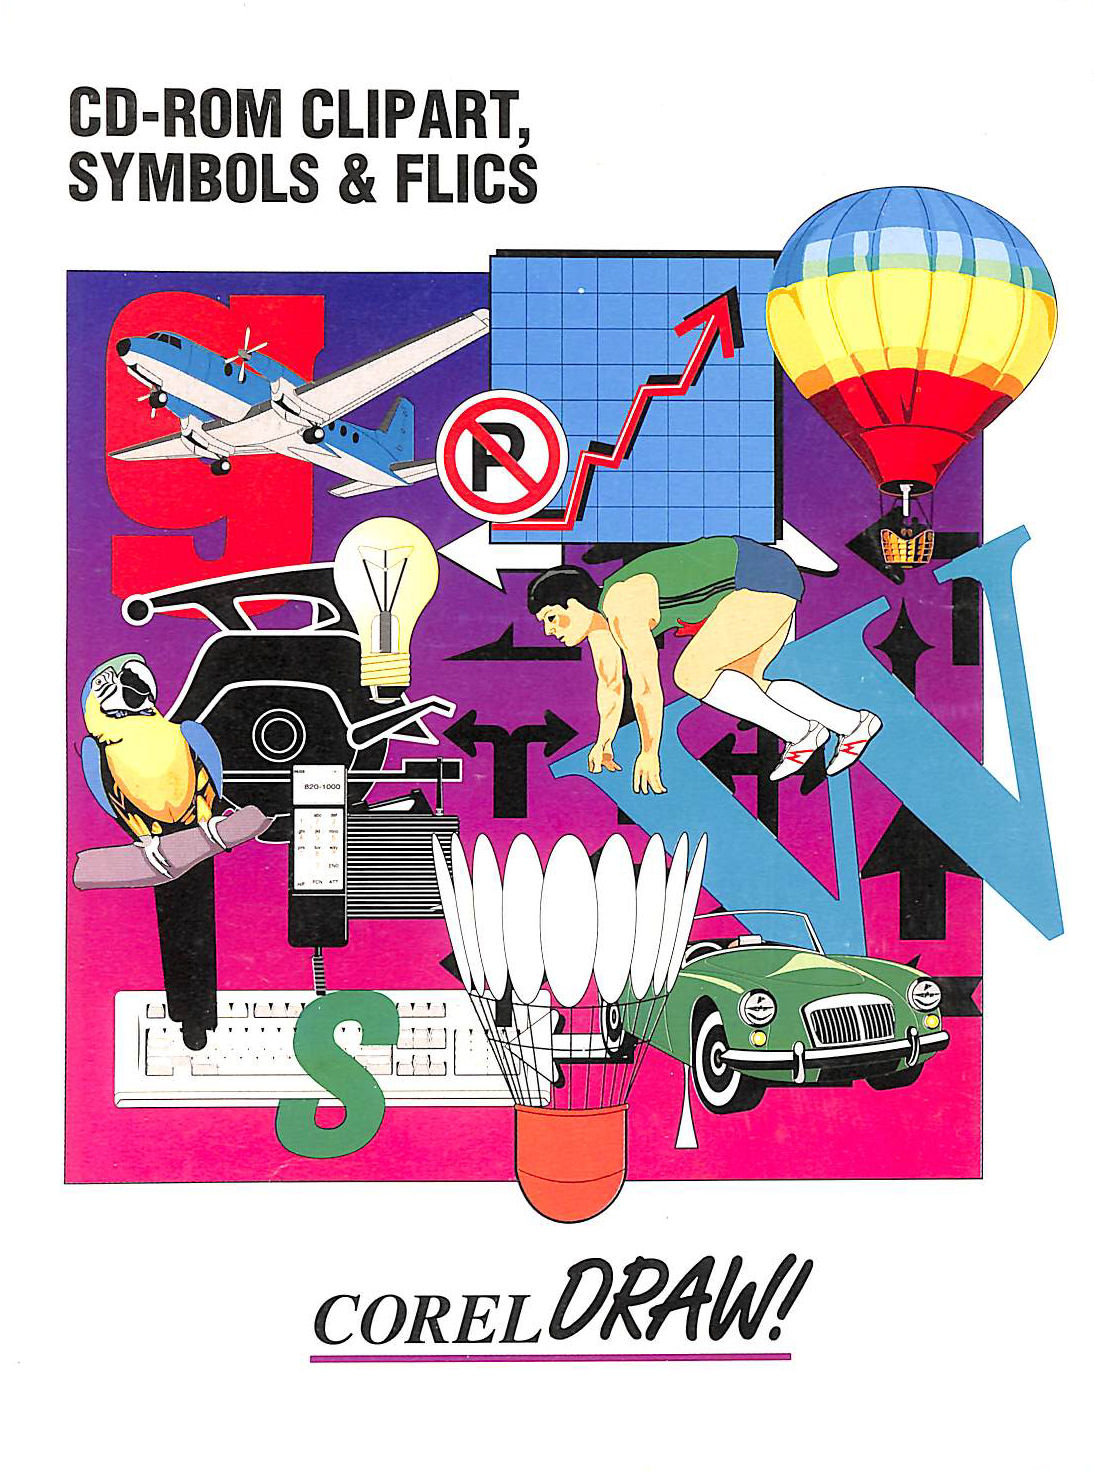 Image for Corel Draw! CD-Rom Clipart, Symbols and Flics